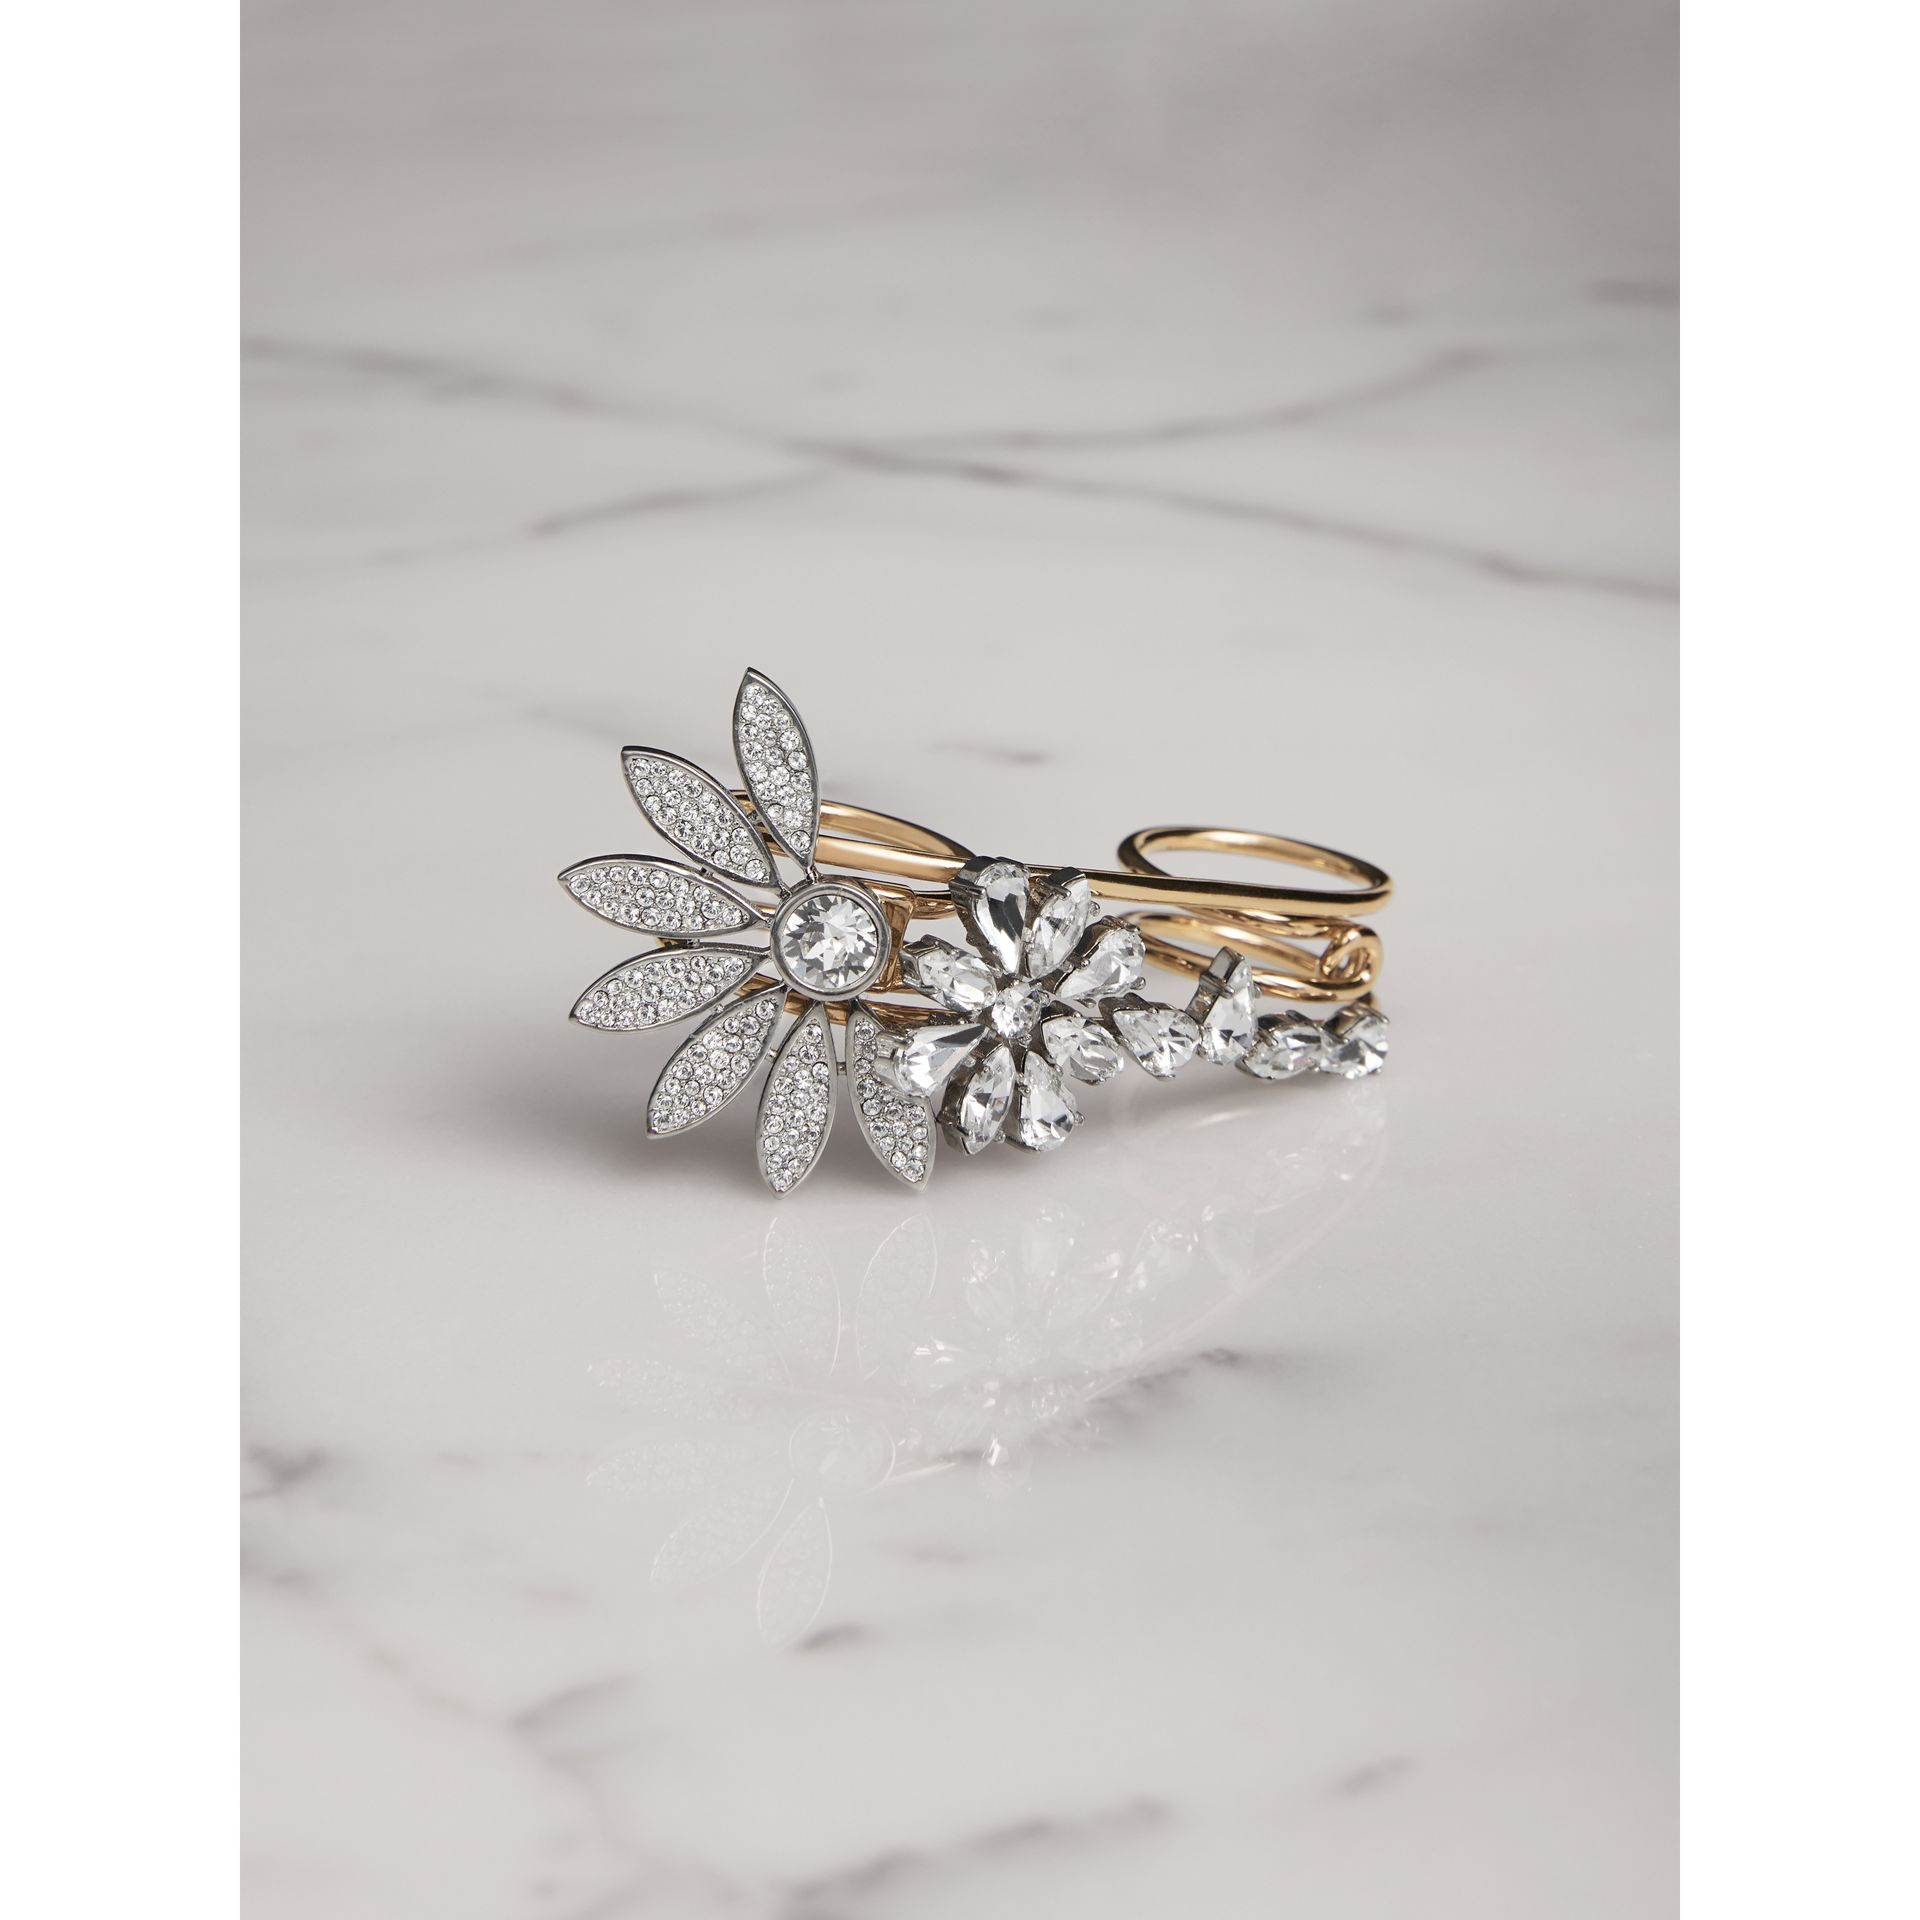 Bague double en laiton avec marguerites en cristal - Femme | Burberry - photo de la galerie 0